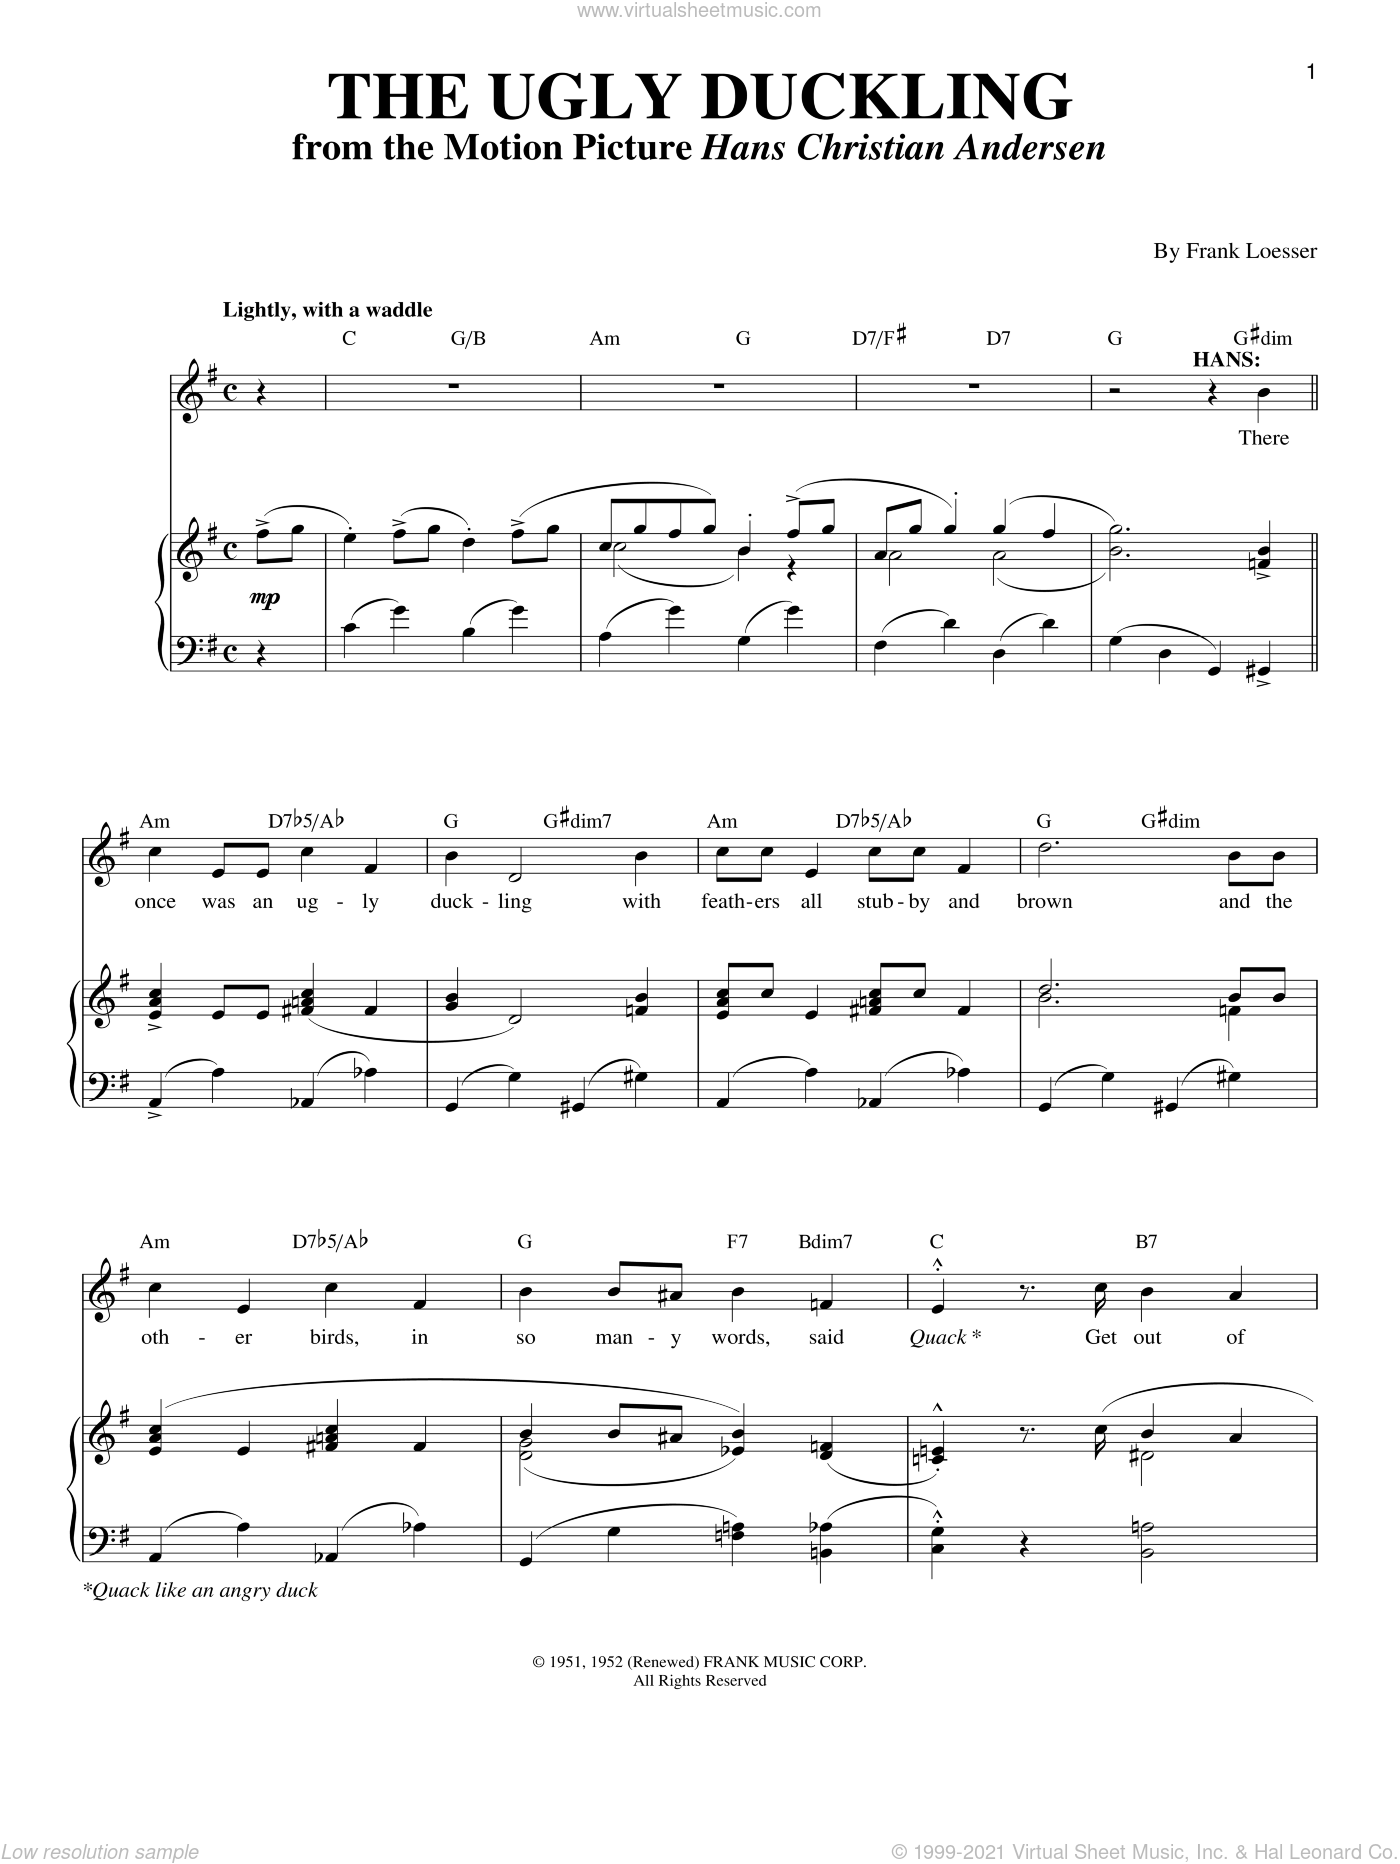 The Ugly Duckling sheet music for voice and piano by Frank Loesser, intermediate skill level